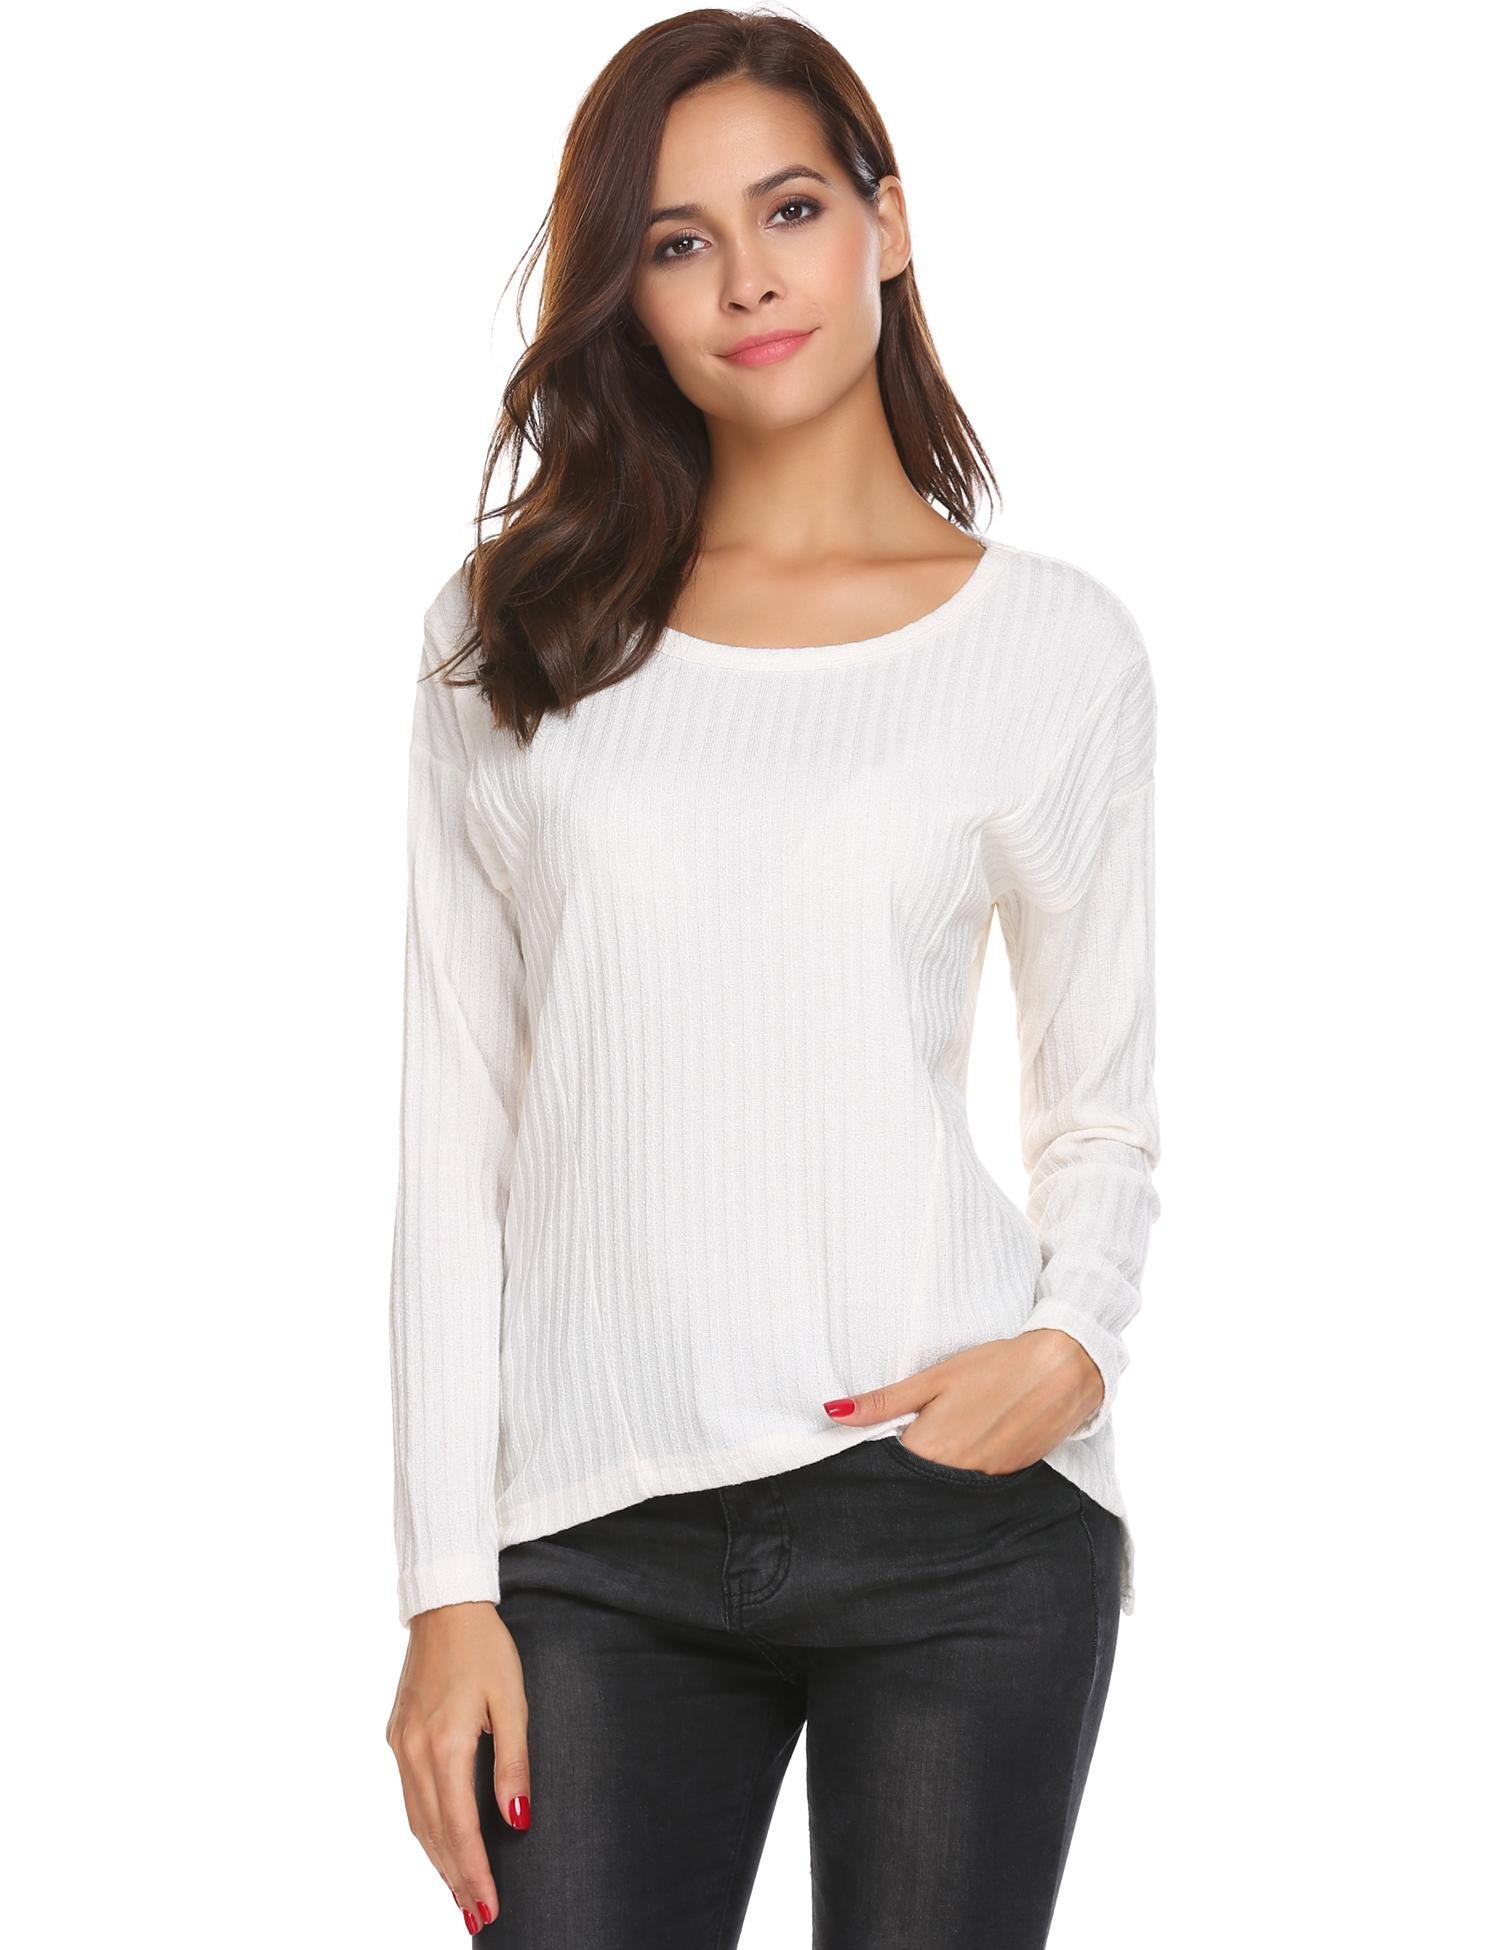 Zeagoo Women Causal Loose Long Sleeve Solid White Knit Jumper Pullovers Sweater 1white Small